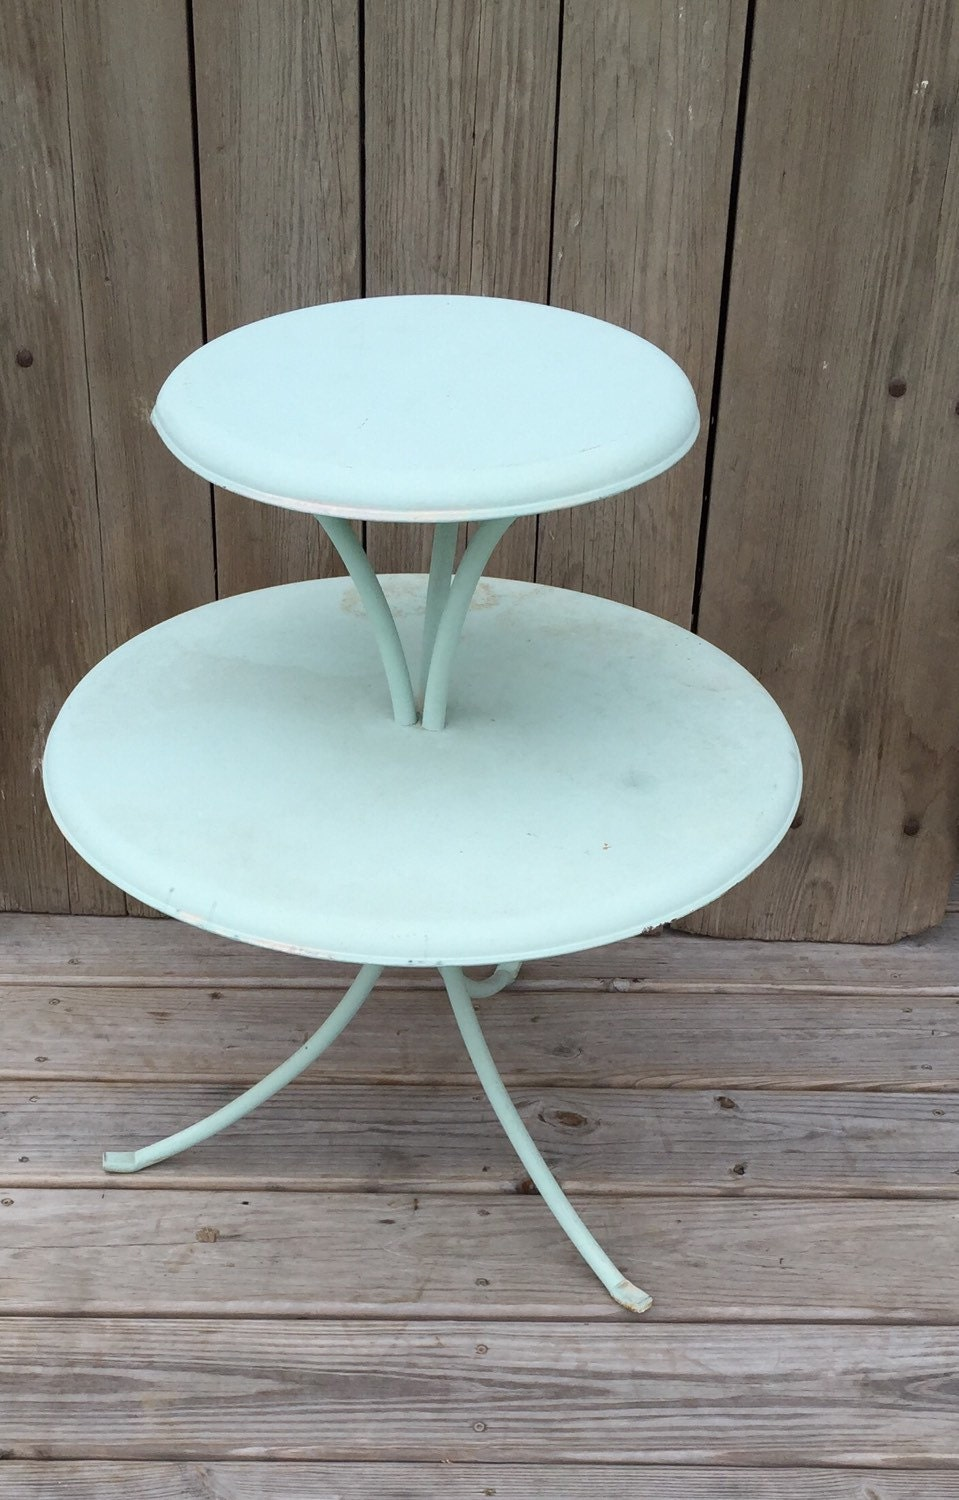 vintage metal table painted metal patio table end table mid